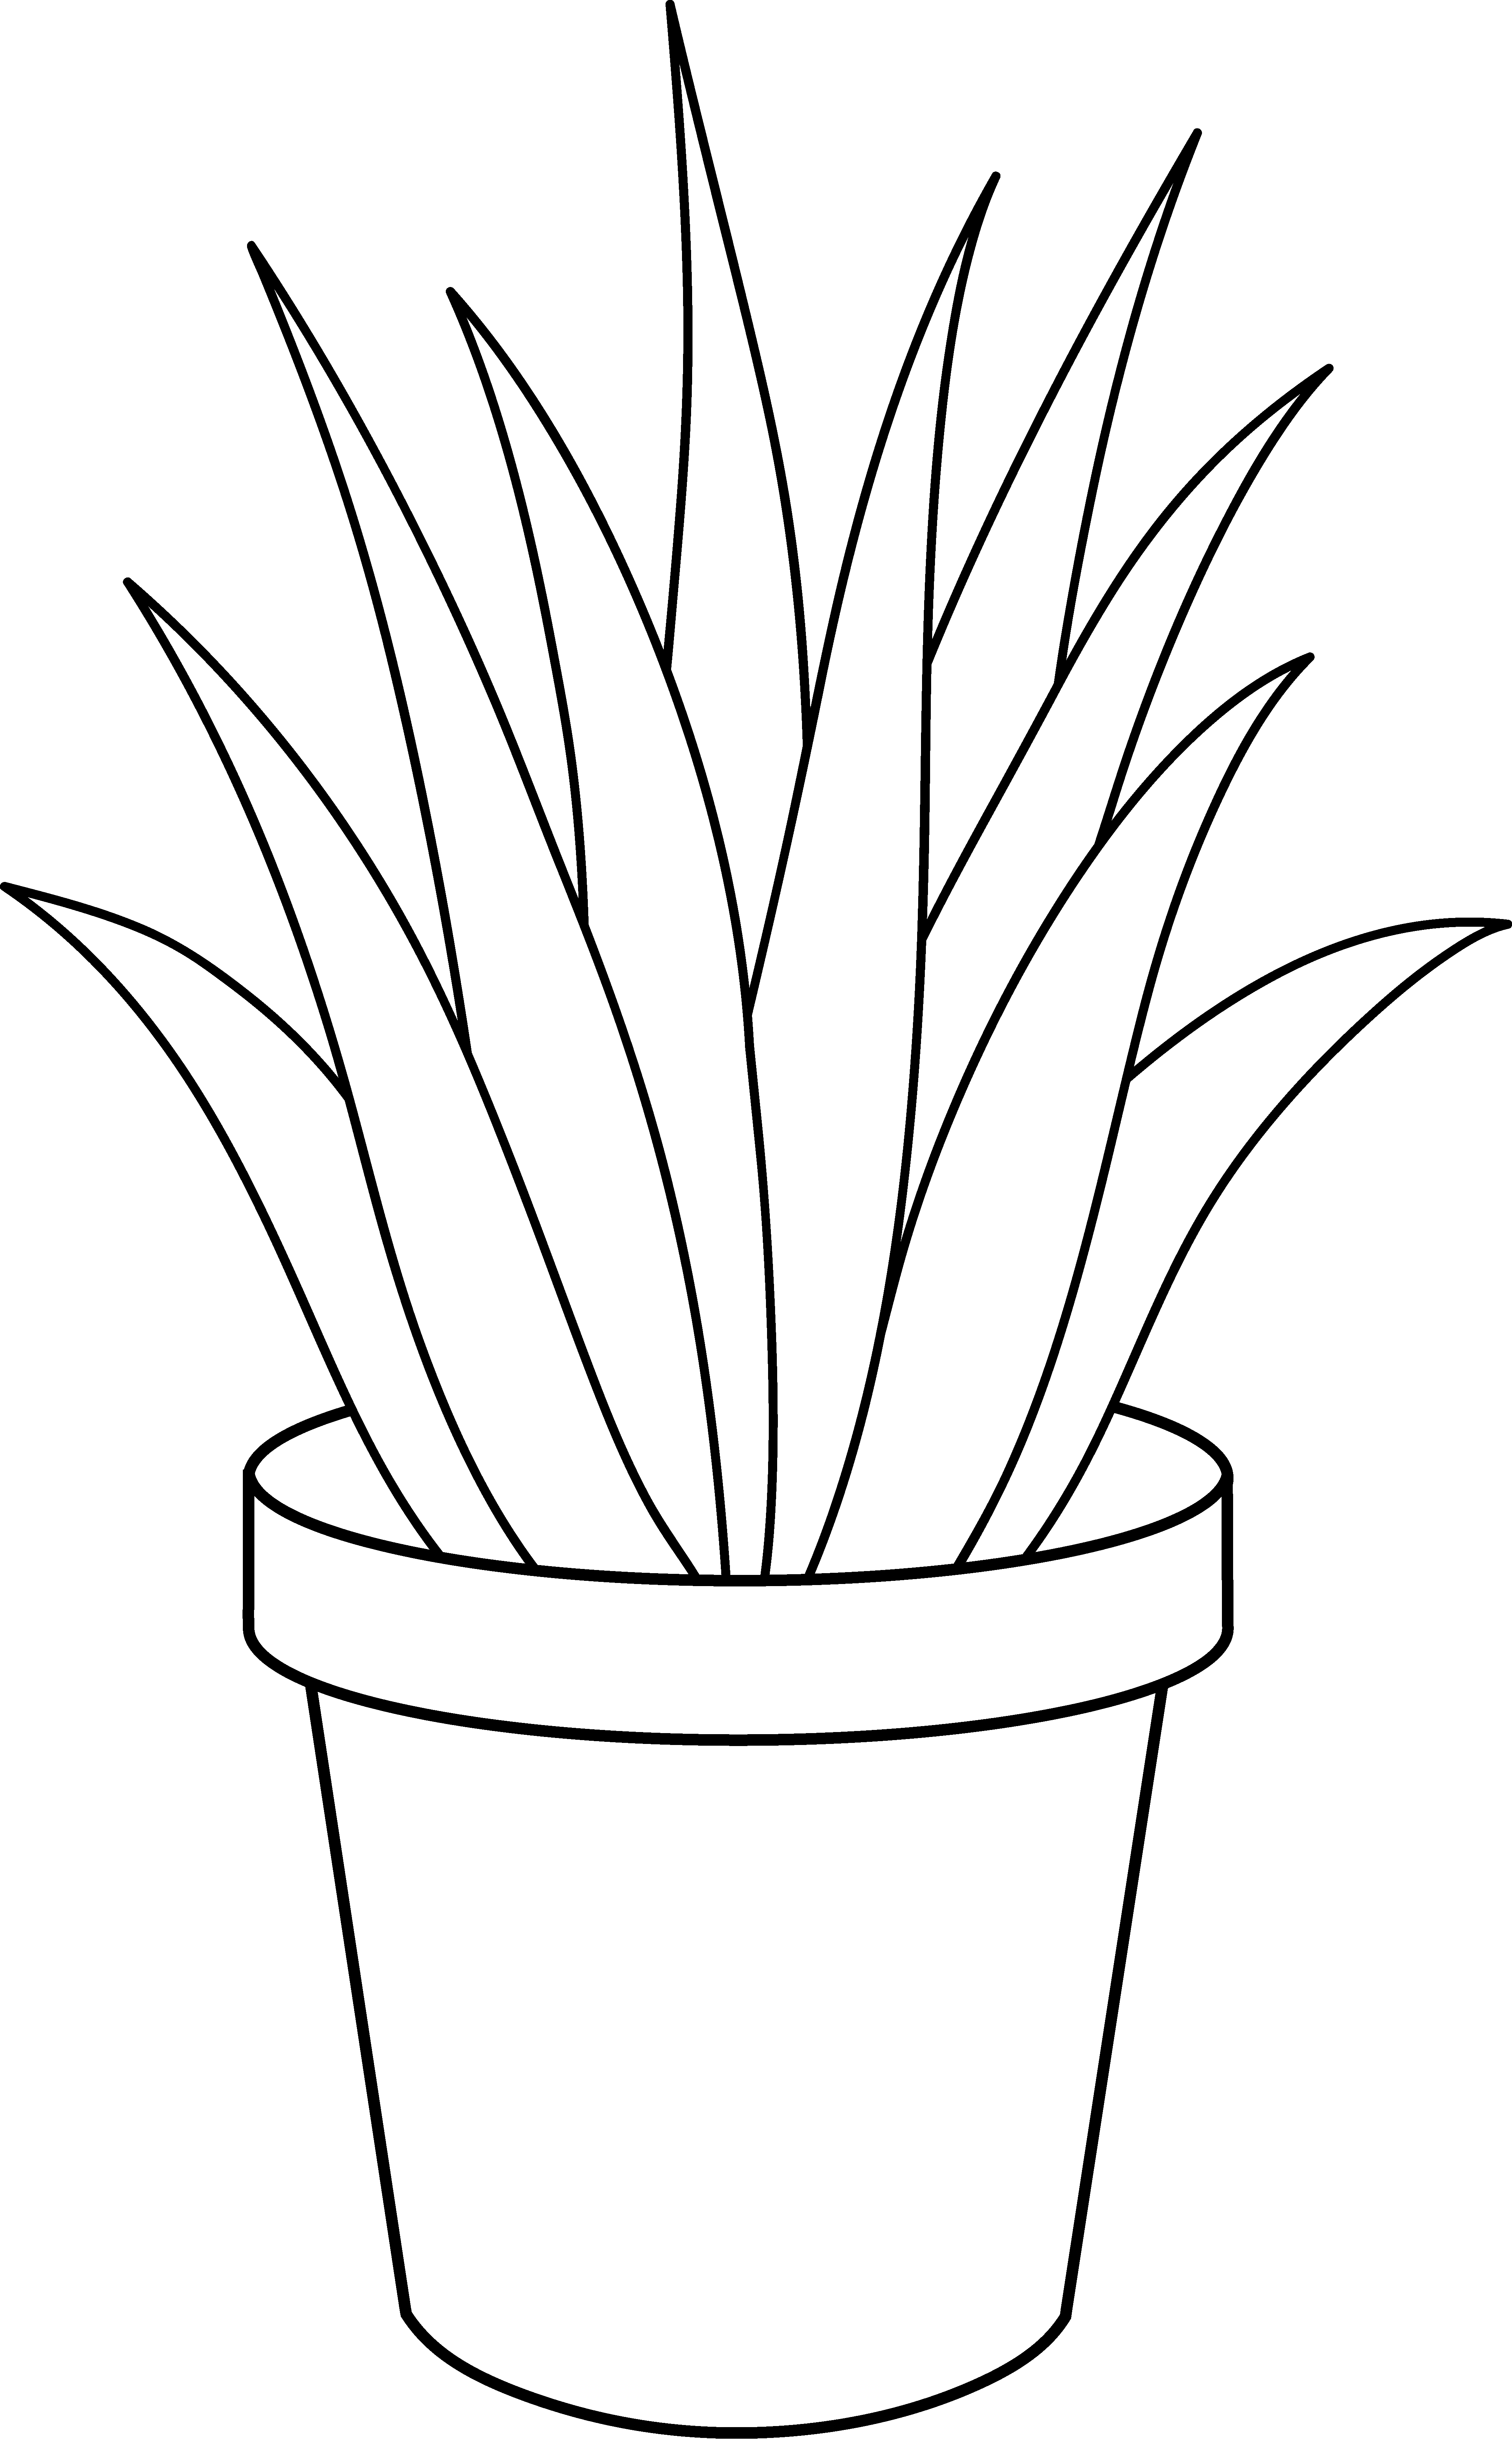 Line Drawing Of Flower Pot : Potted plant cliparts